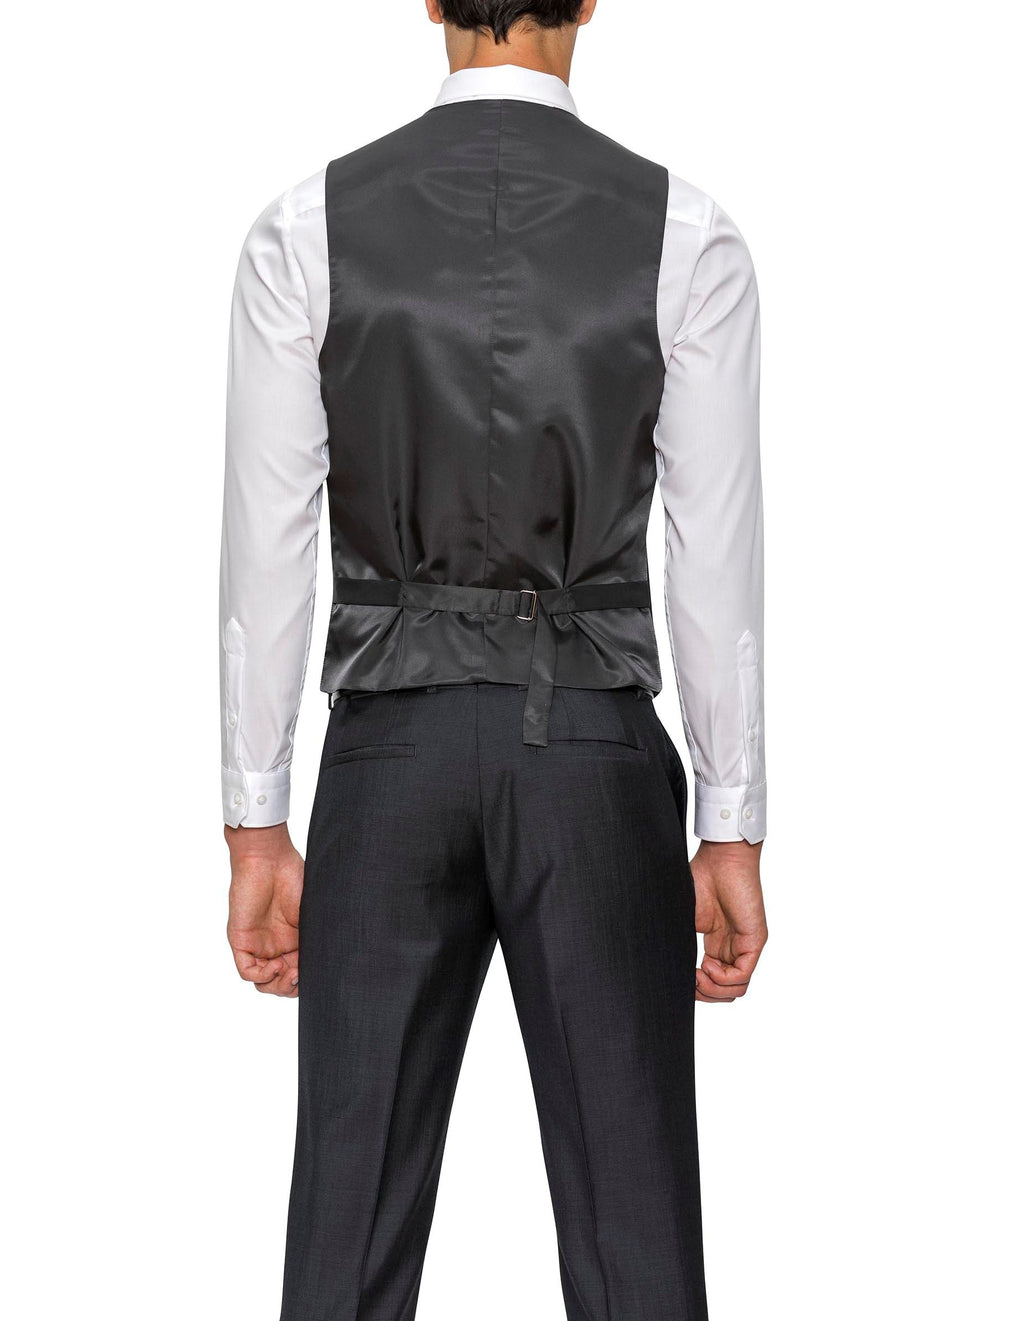 Gibson Charcoal Vest - Ignition For Men